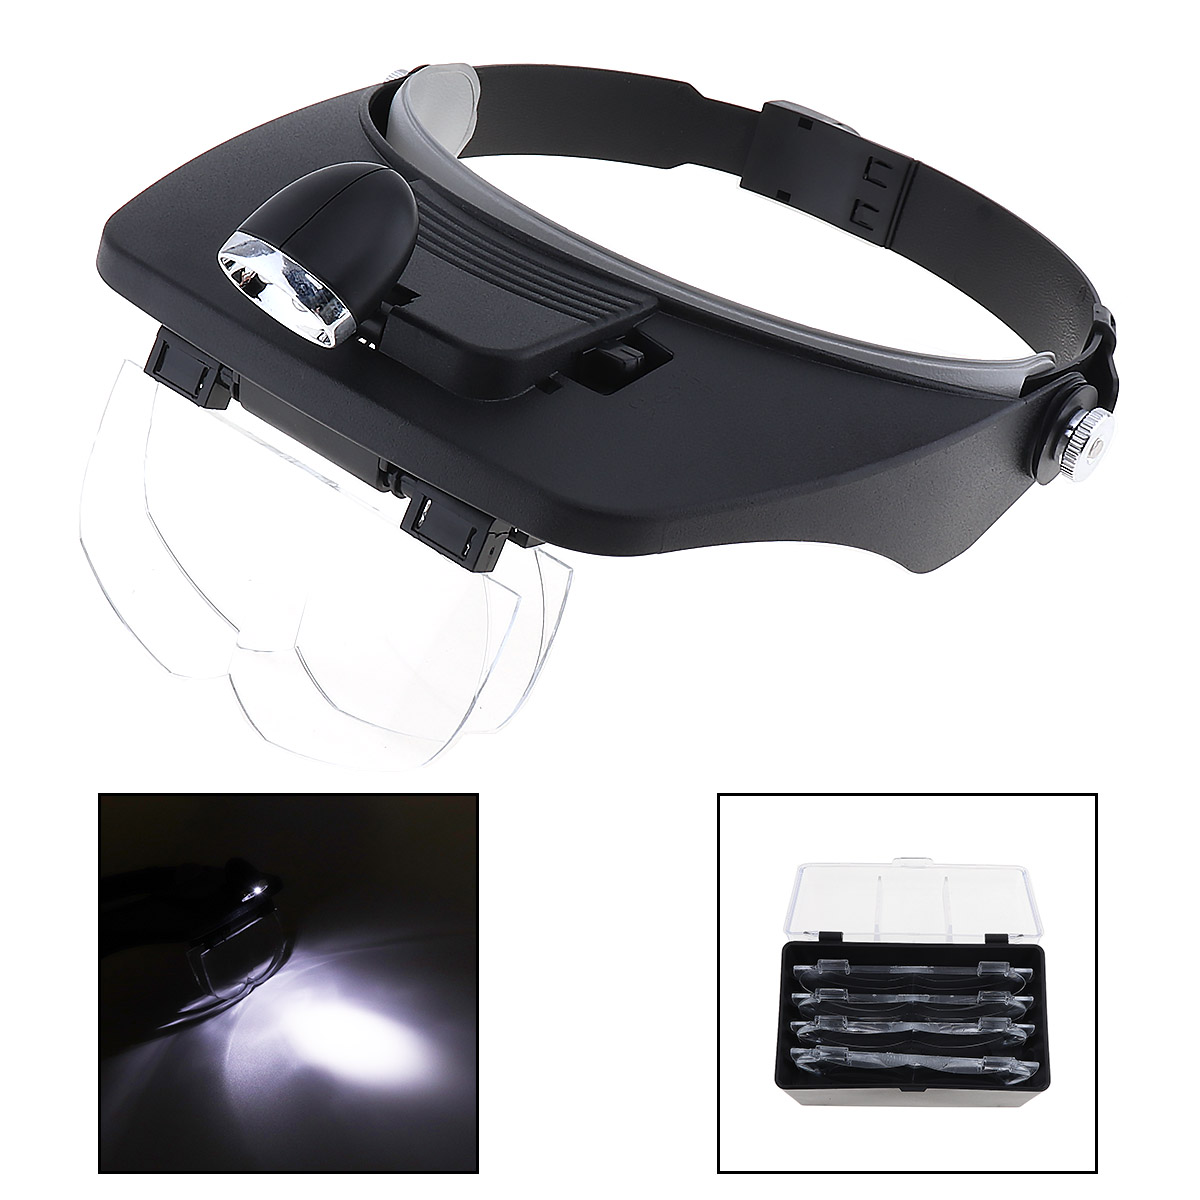 Head Magnifying Glasses with LED 10 Power Magnifier for Reading Optivisor Magnifying Glass Loupes Jewelry Watch Repair 3 Lamp ...